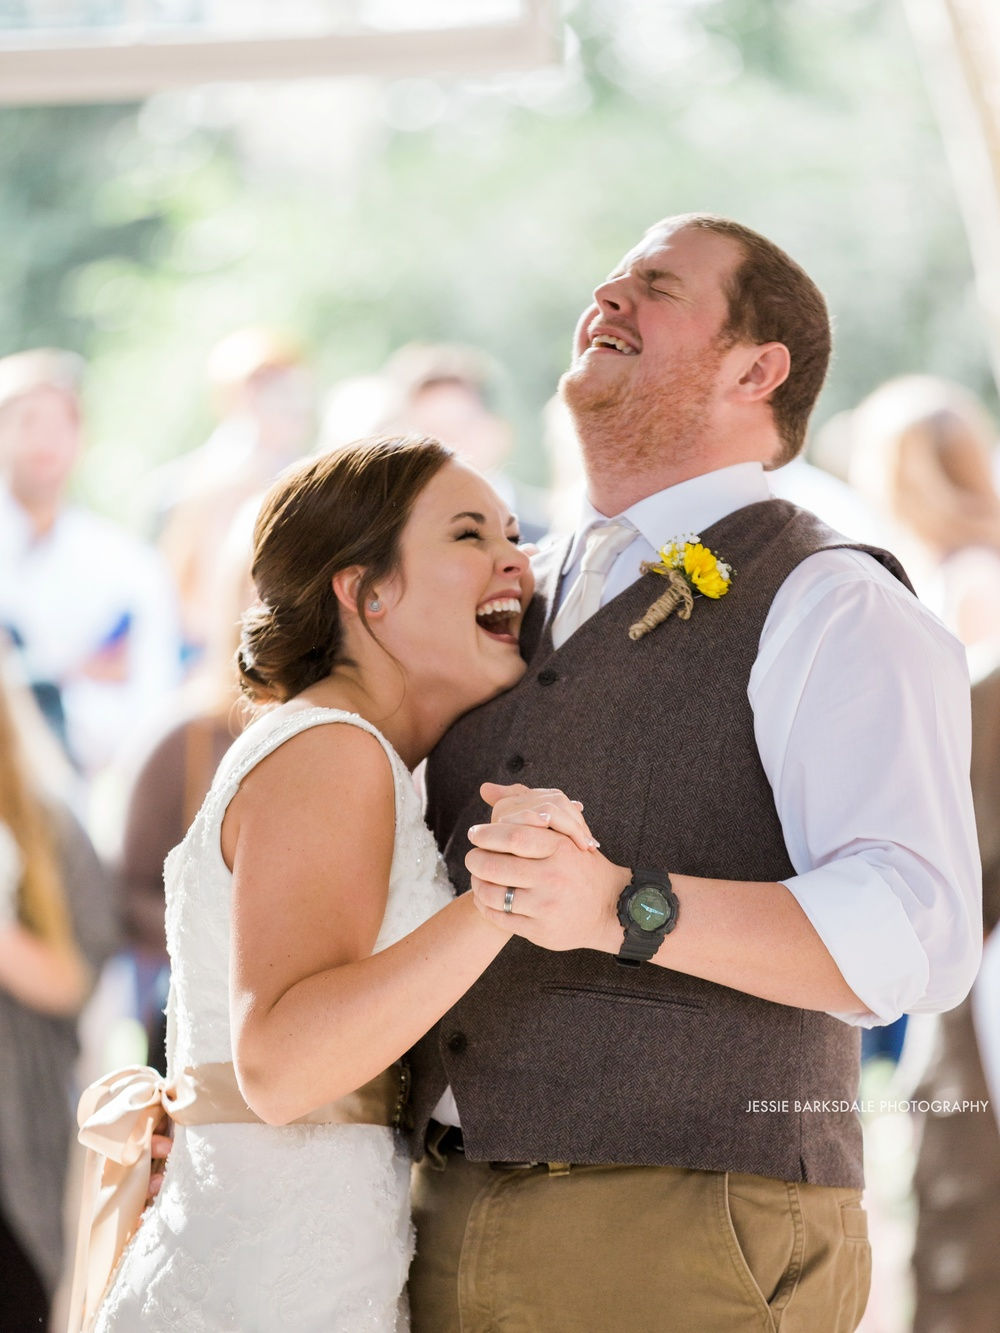 Jessie Barksdale Photography_Elms Coosada_Plantation Home_First Dance Laugh Smile_Bride and Groom_Yellow_Fall Wedding Inspiration_Birmingham Montgomery Alabama Atlanta Selma Wedding Photographer